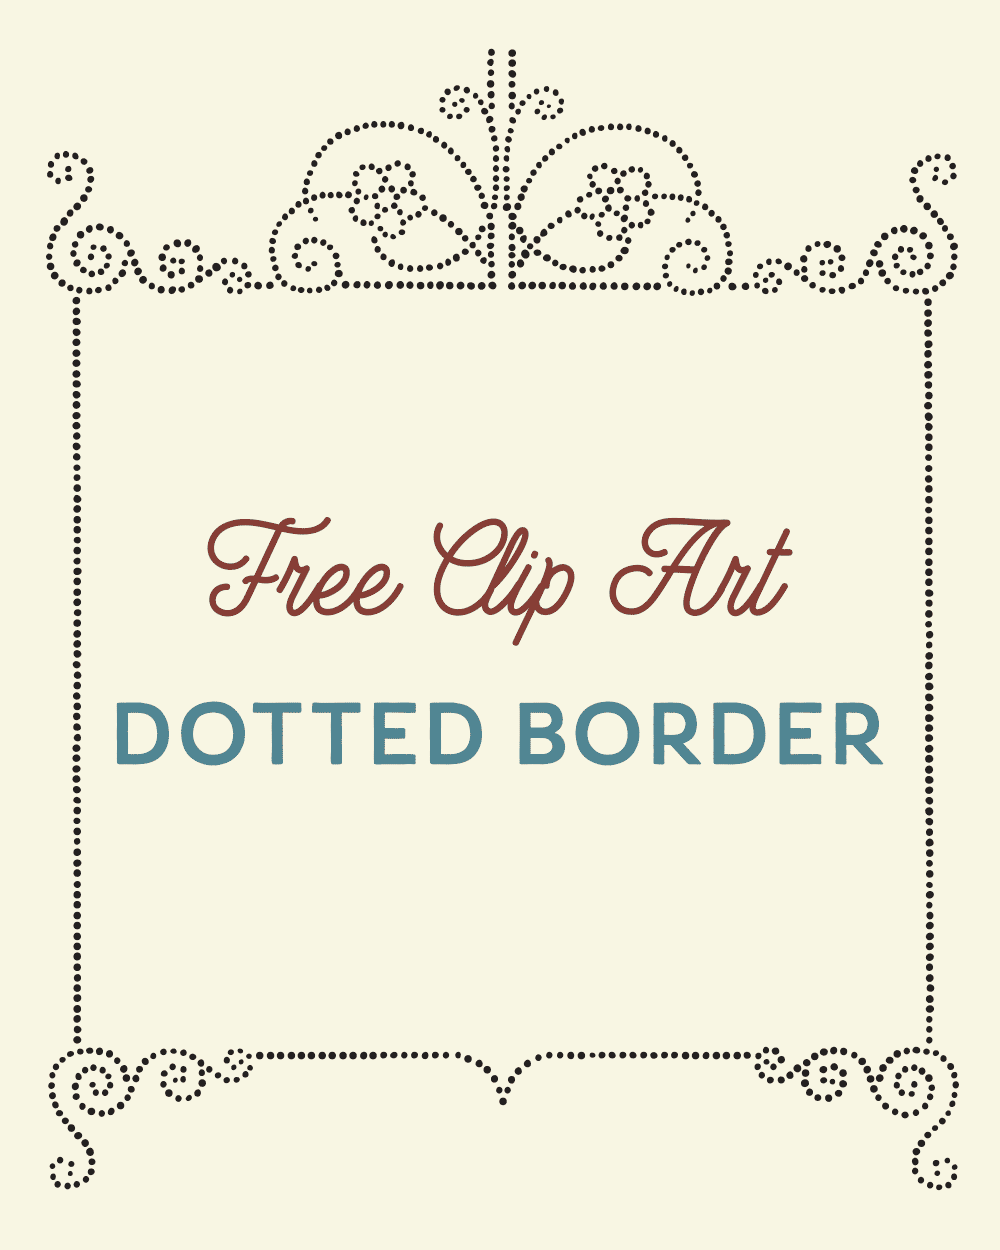 Royalty Free Clipart | Vintage Dotted Border